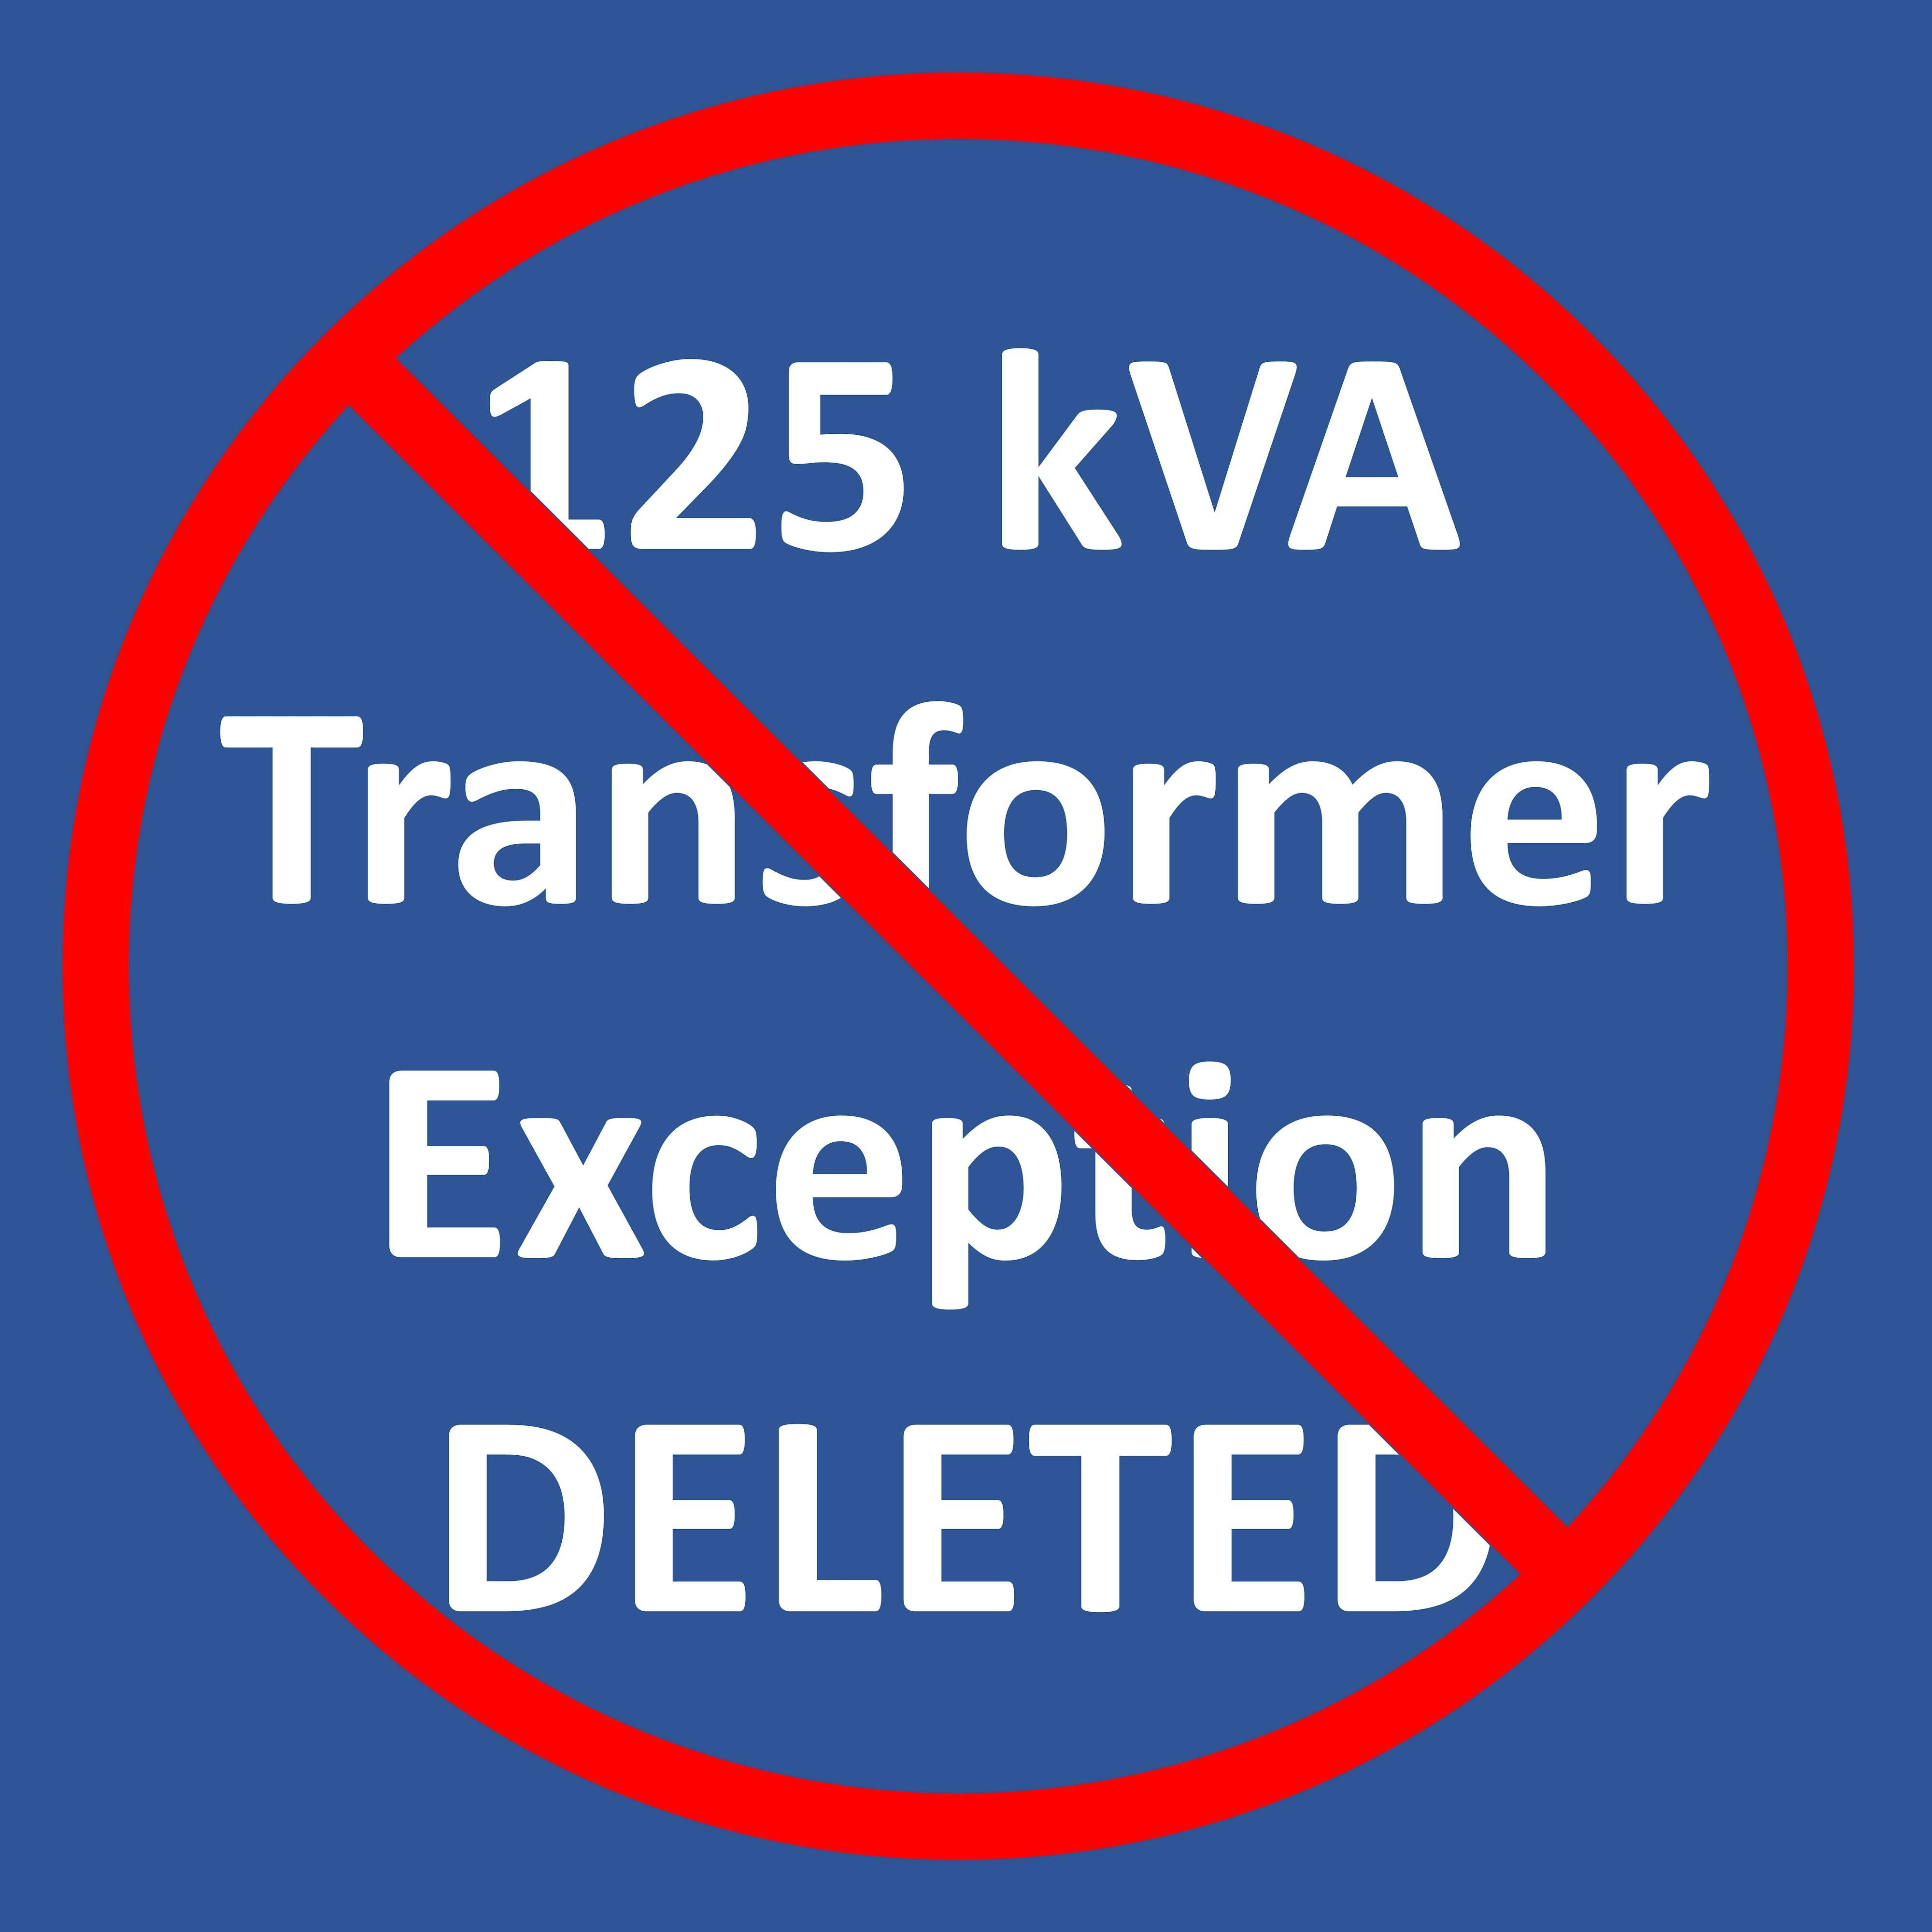 2018 IEEE 1584 - 125 kVA Transformer Exception DELETED! - Arc Flash